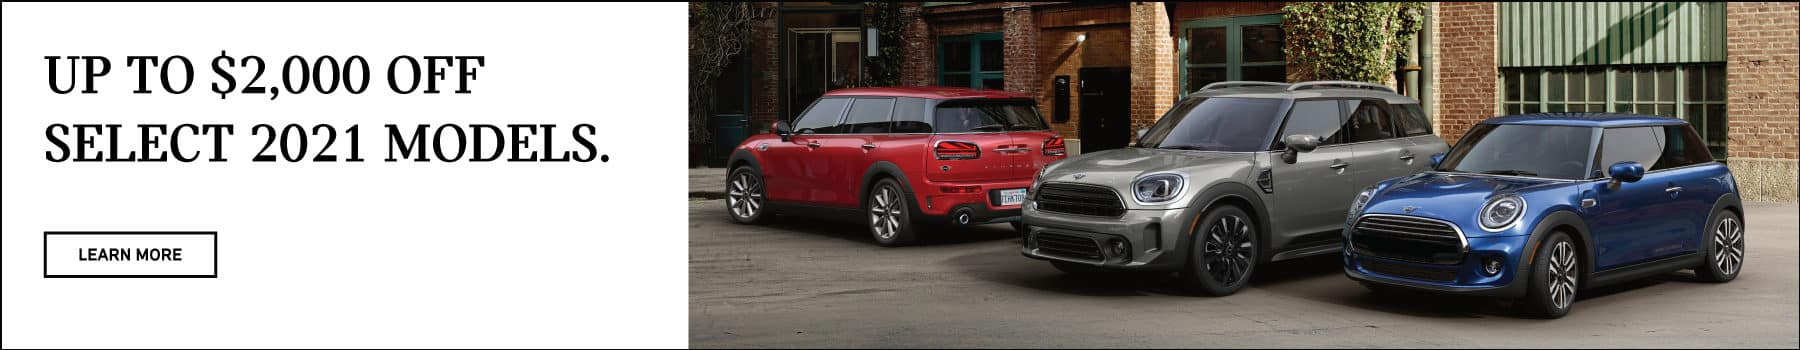 Up to $2,000 off select 2021 models. Offer valid through 03/31/21. Click to view inventory and details. Picture shows three MINI vehicles parked in an urban square.